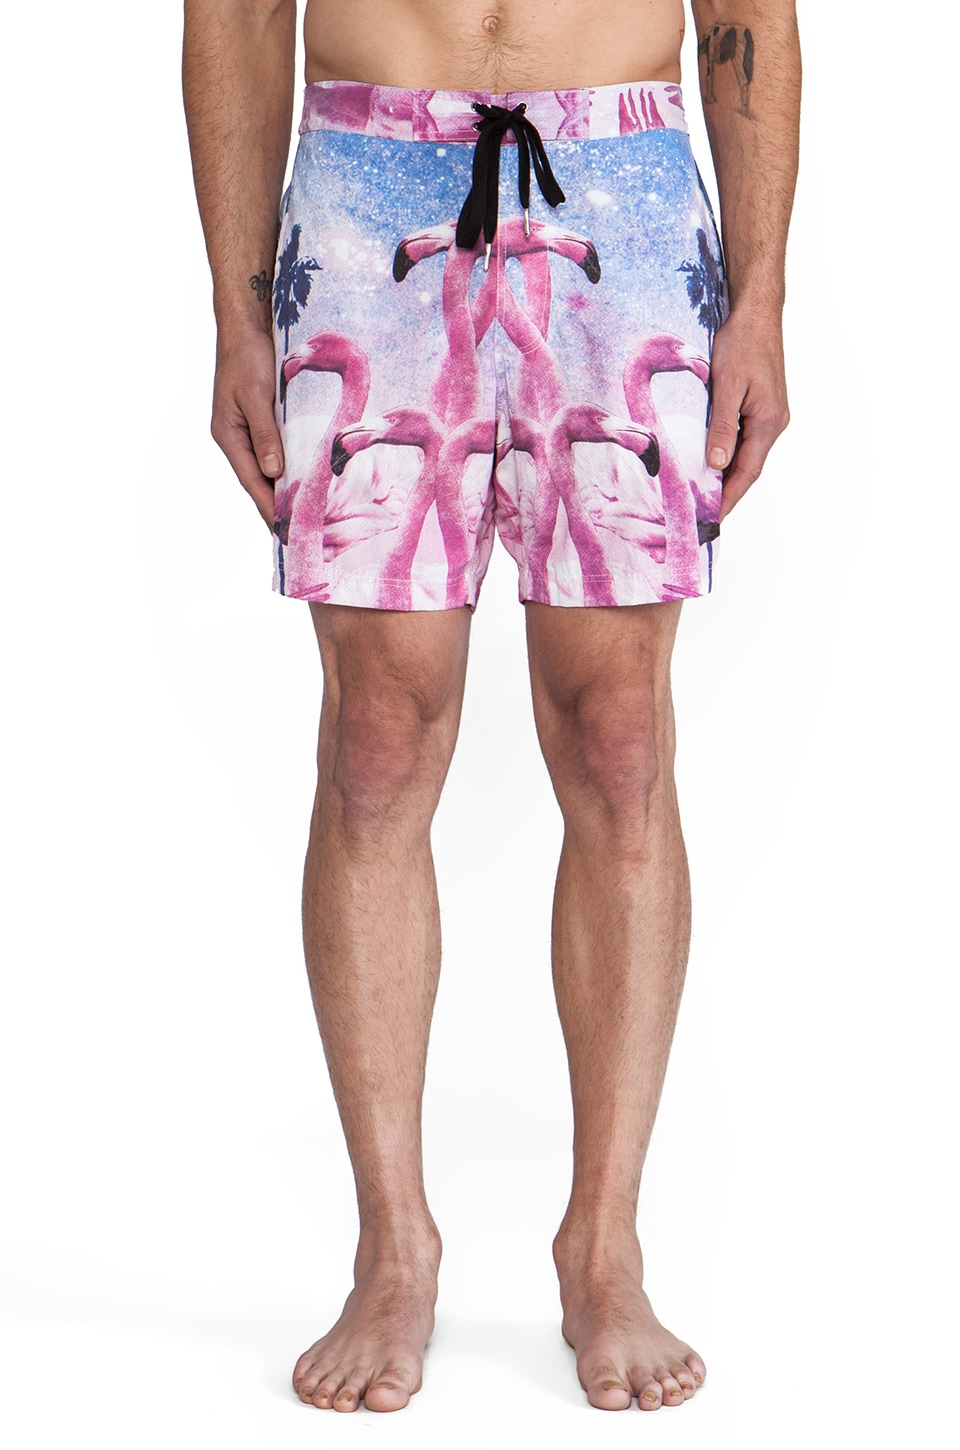 INSTED WE SMILE Flamingo in Love Short in Multi